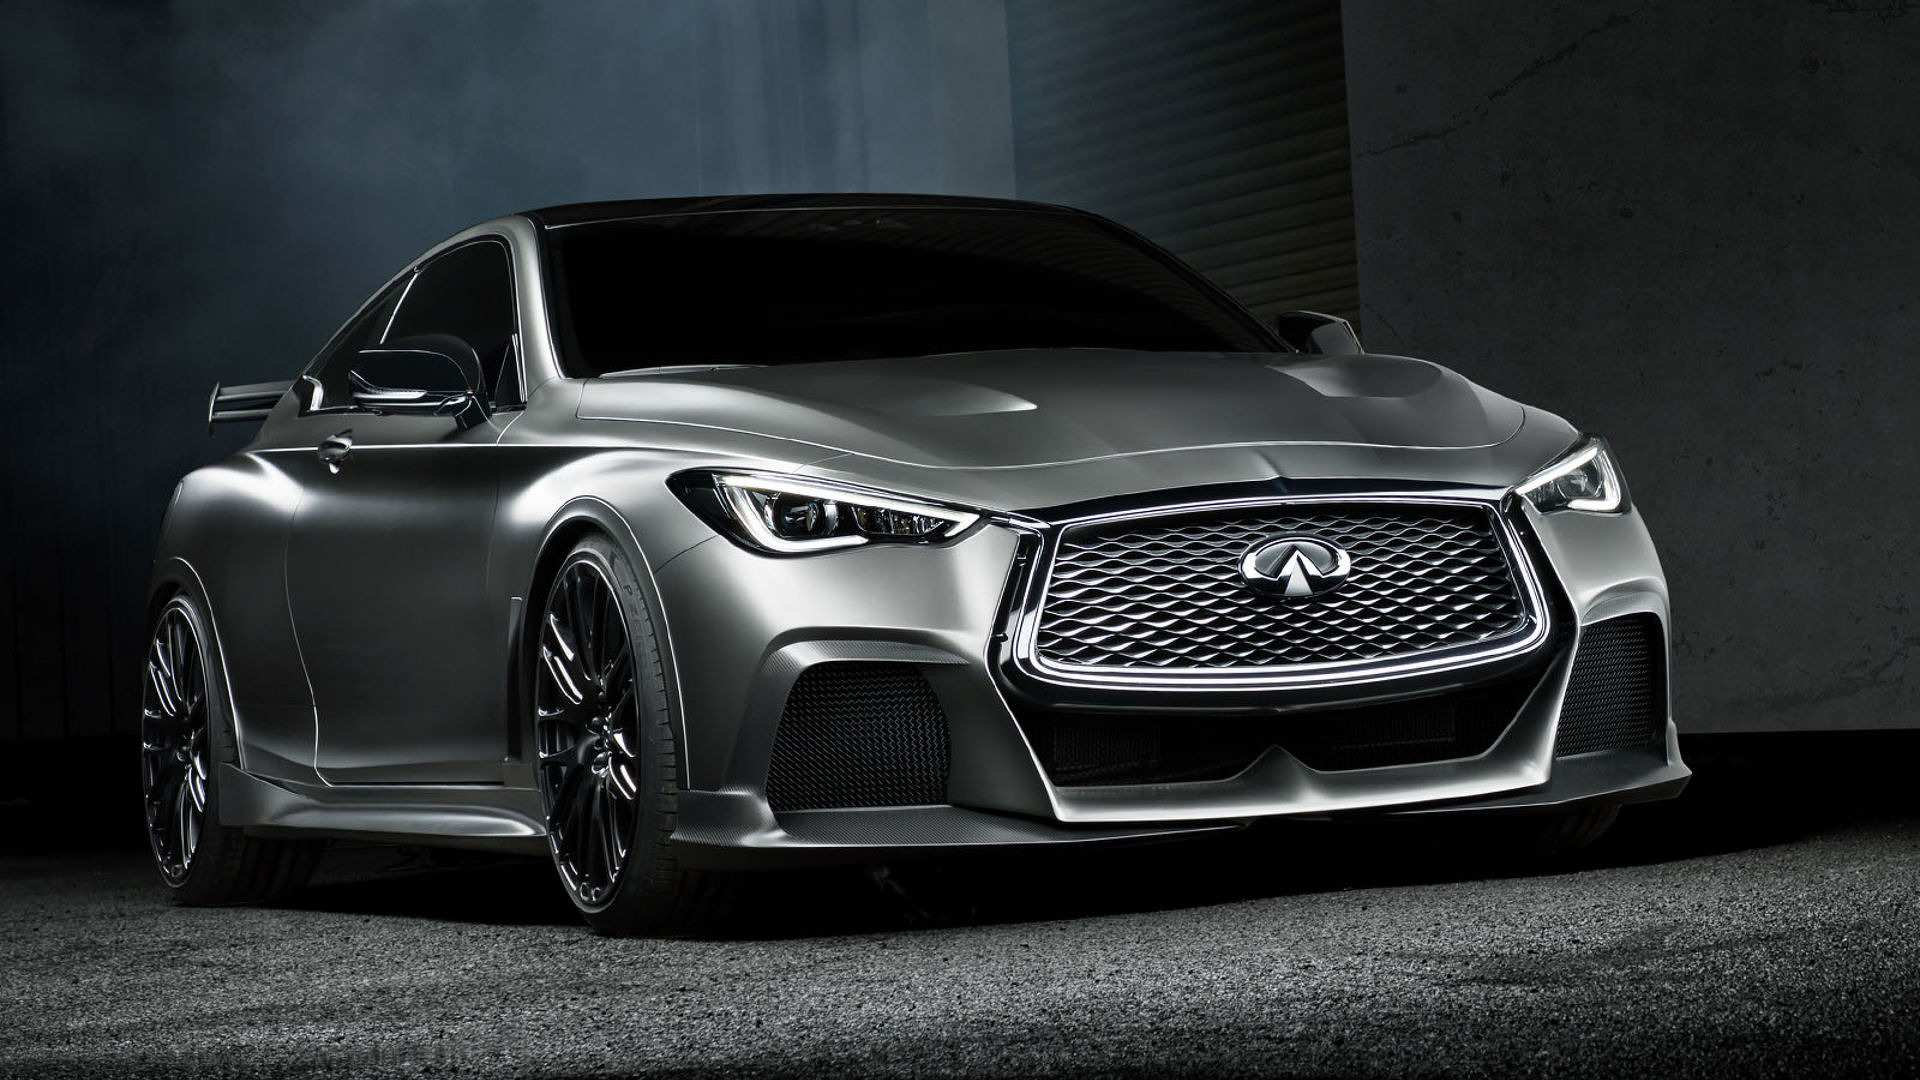 97 Best Review Infiniti Coupe 2020 New Review by Infiniti Coupe 2020